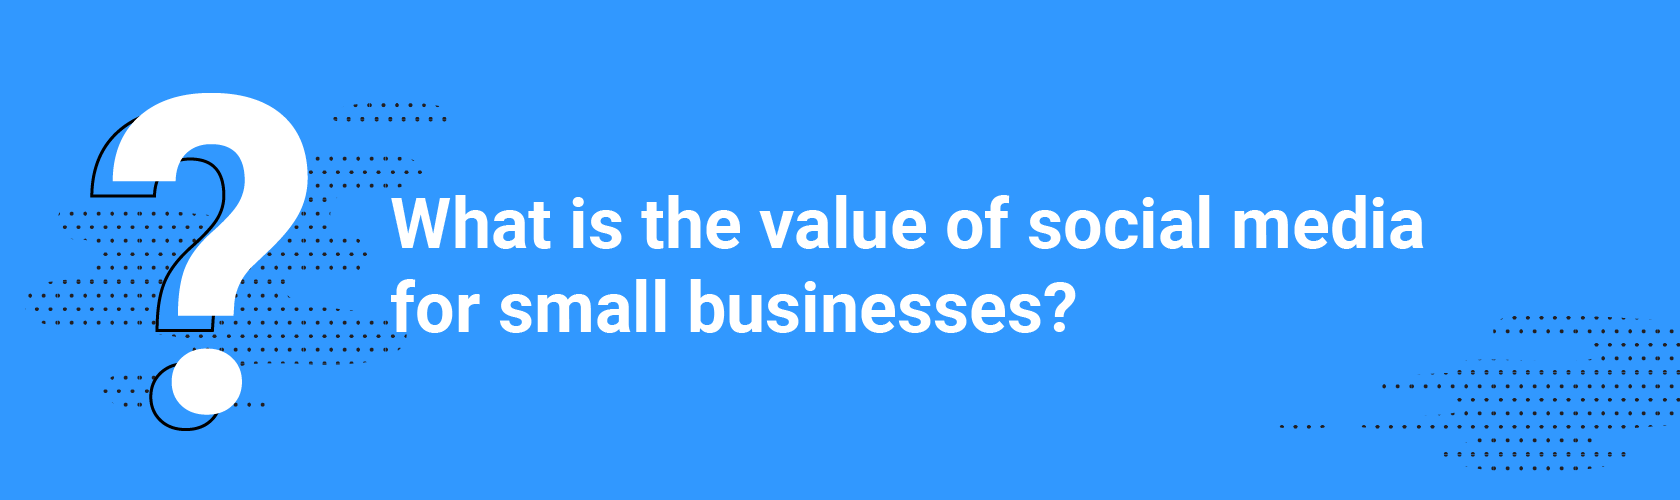 What is the value of social media for small businesses?